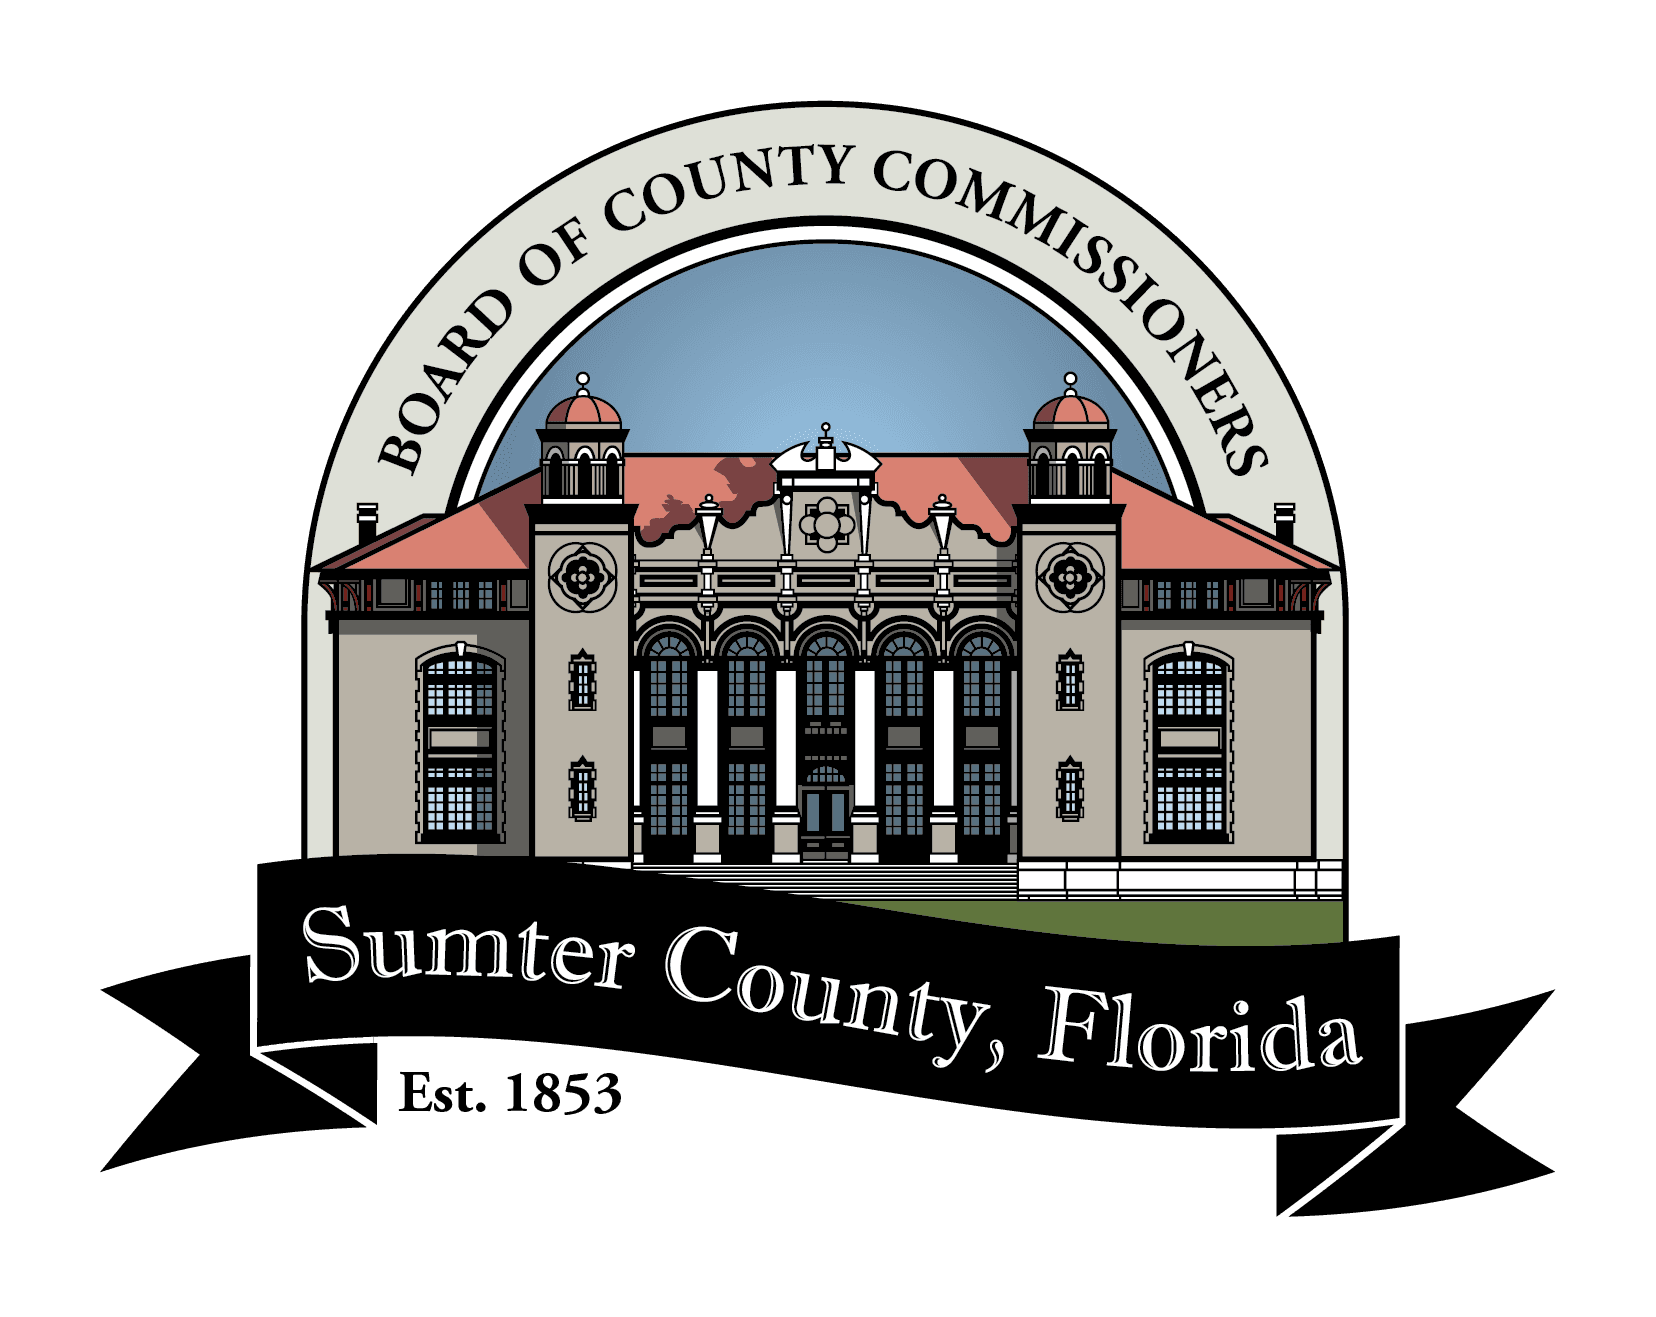 Sumter County logo